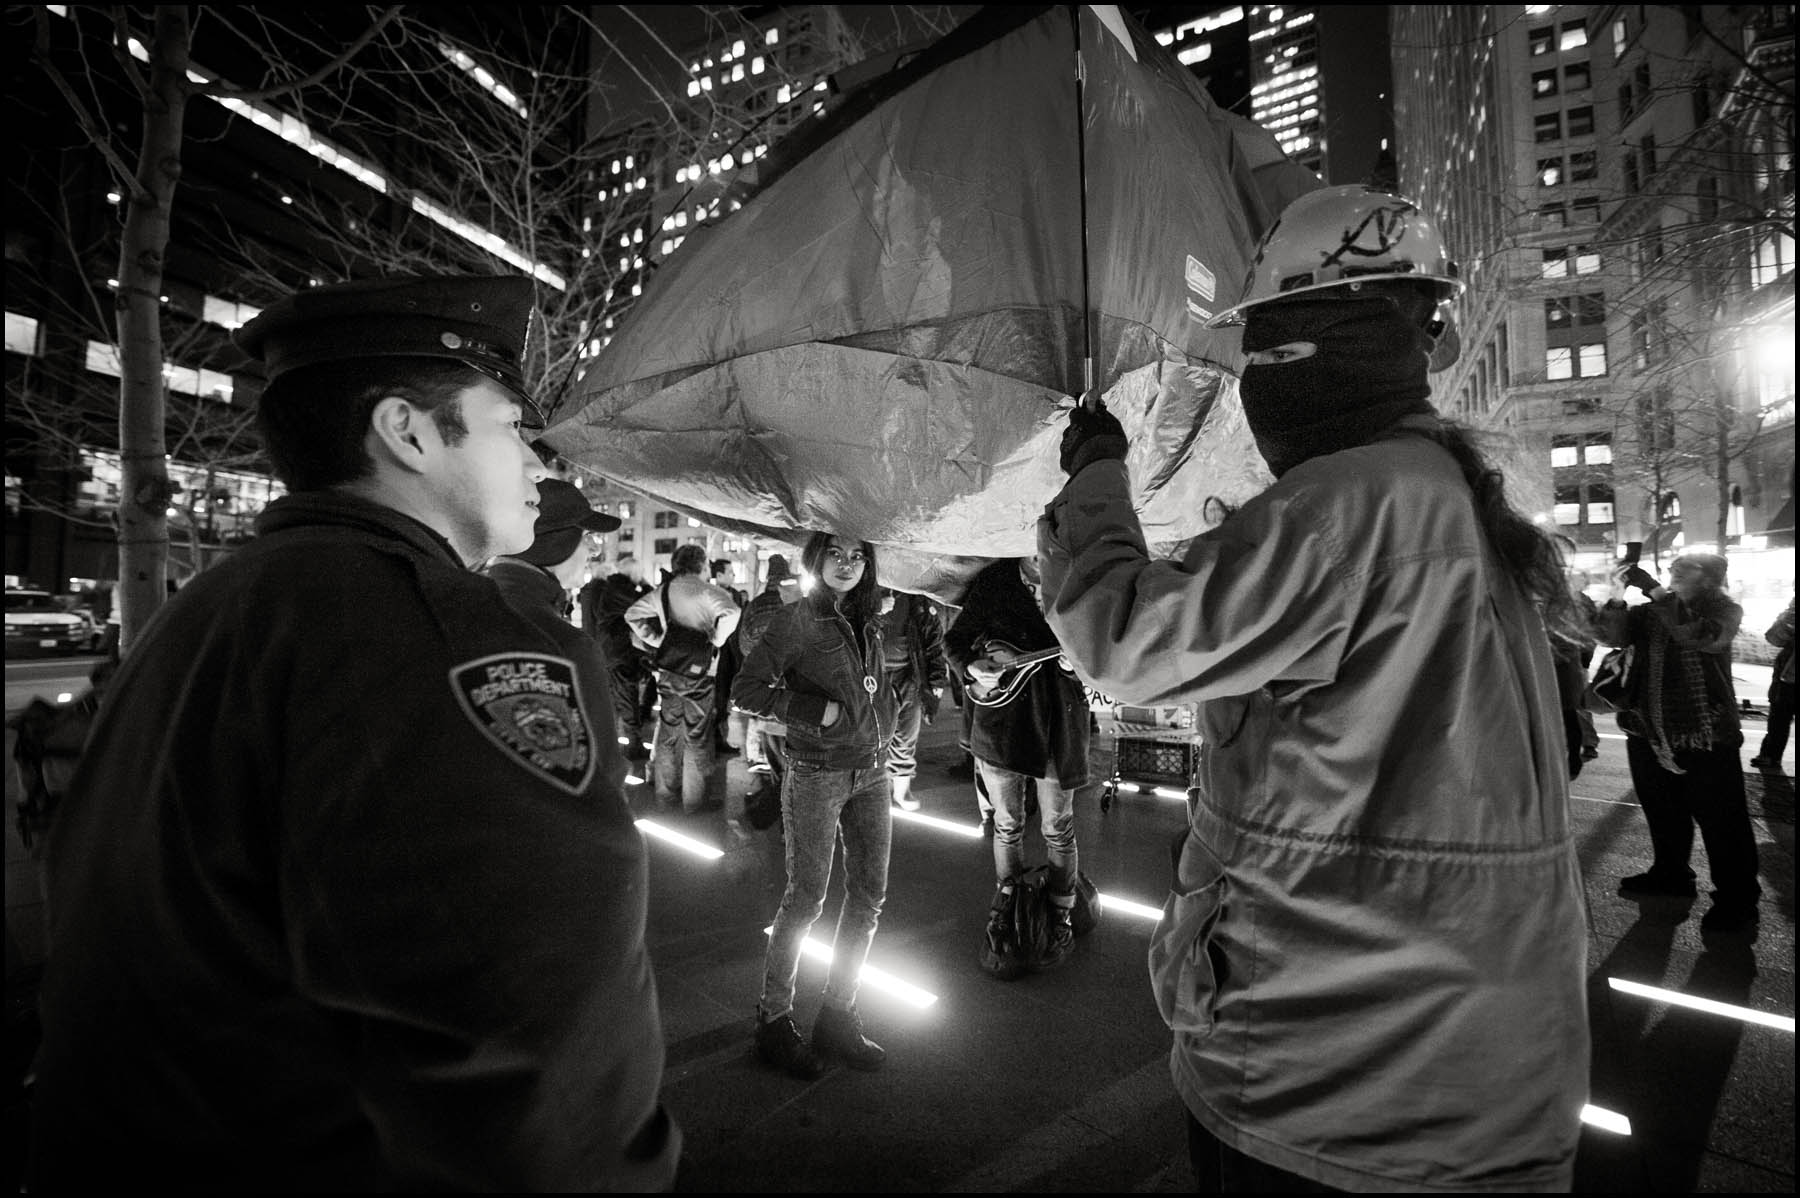 Protesters try to stick to the letter of the law by holding their tent and not setting it down after Zuccotti Park was cleared by police.